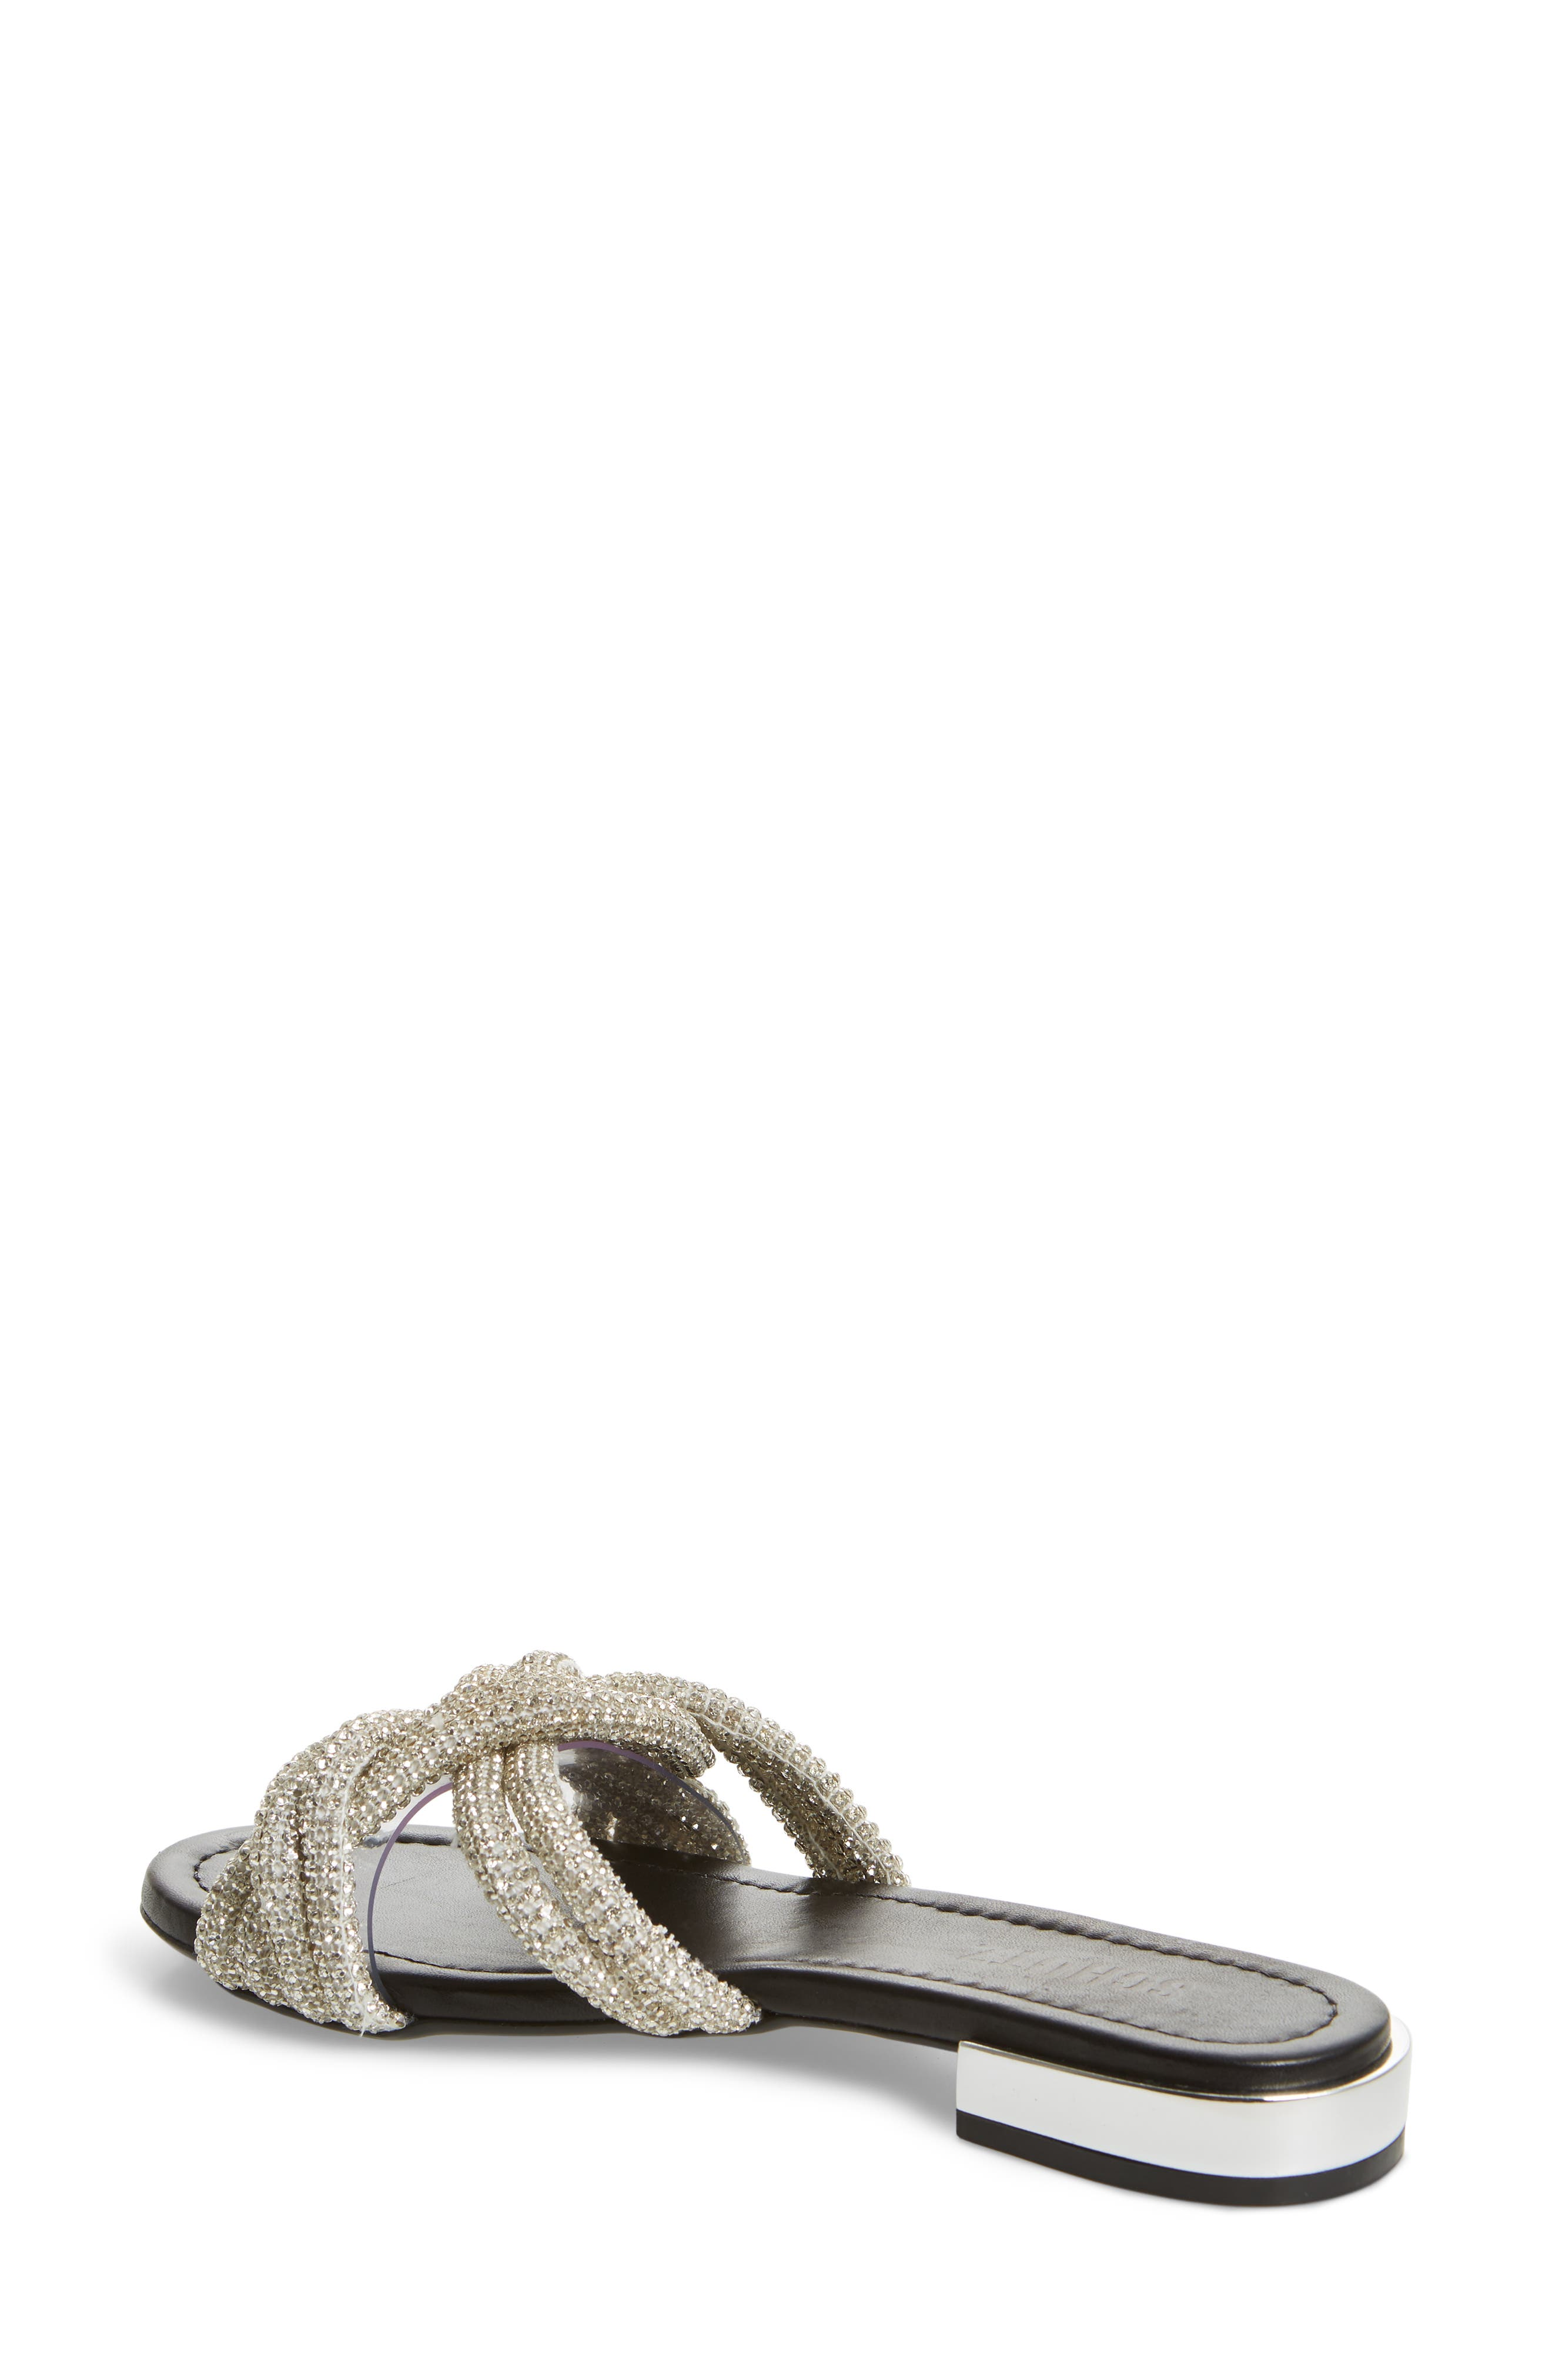 Lindy Braided Slide Sandal,                             Alternate thumbnail 2, color,                             SILVER METALLIC